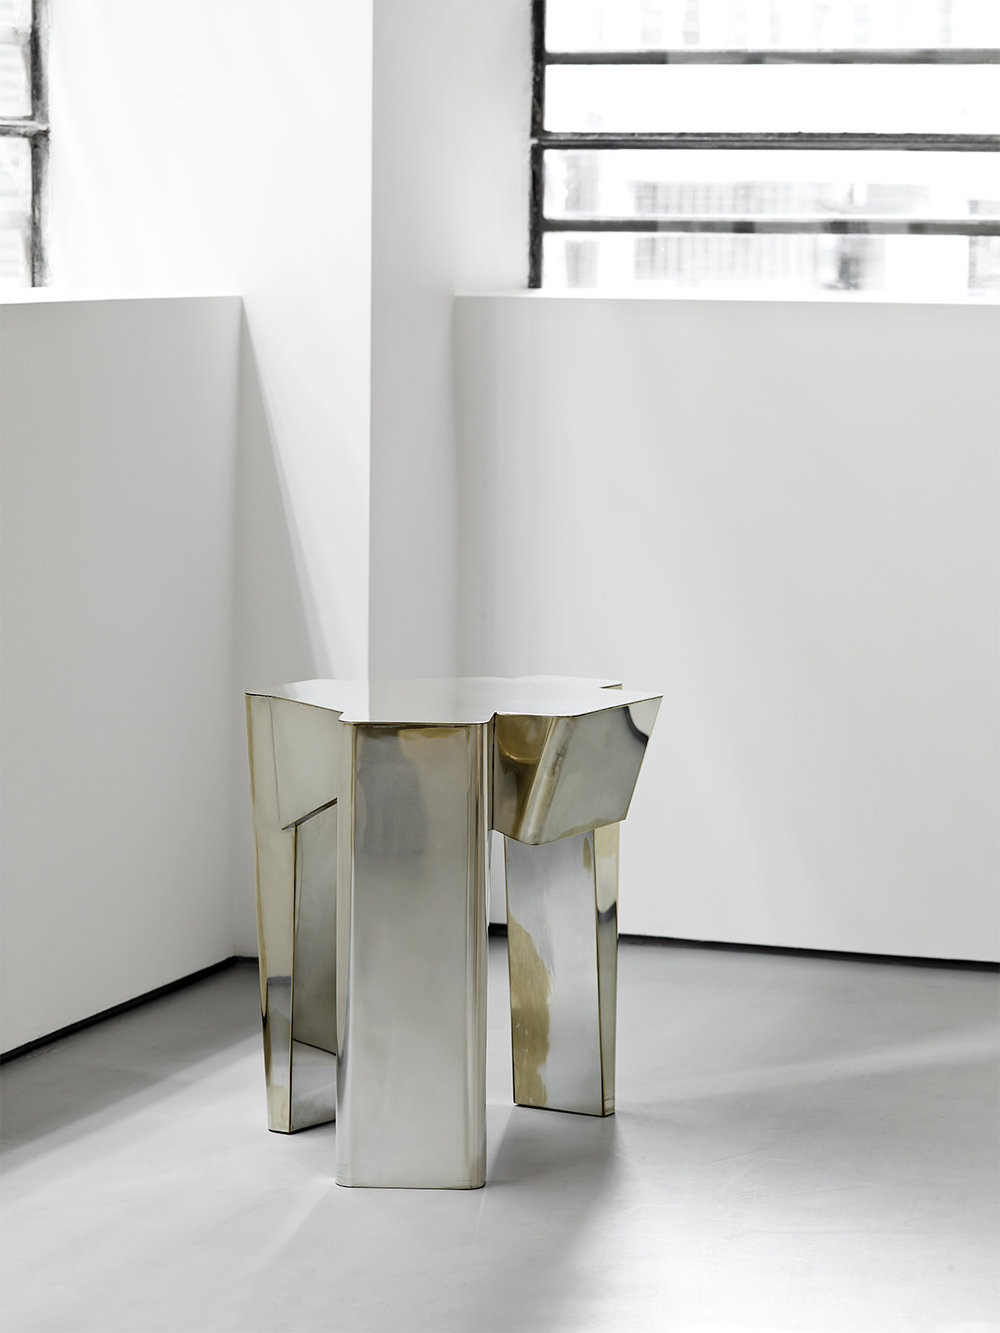 DC1617 silver plated brass side table Vicenzo de Cotiis 2016